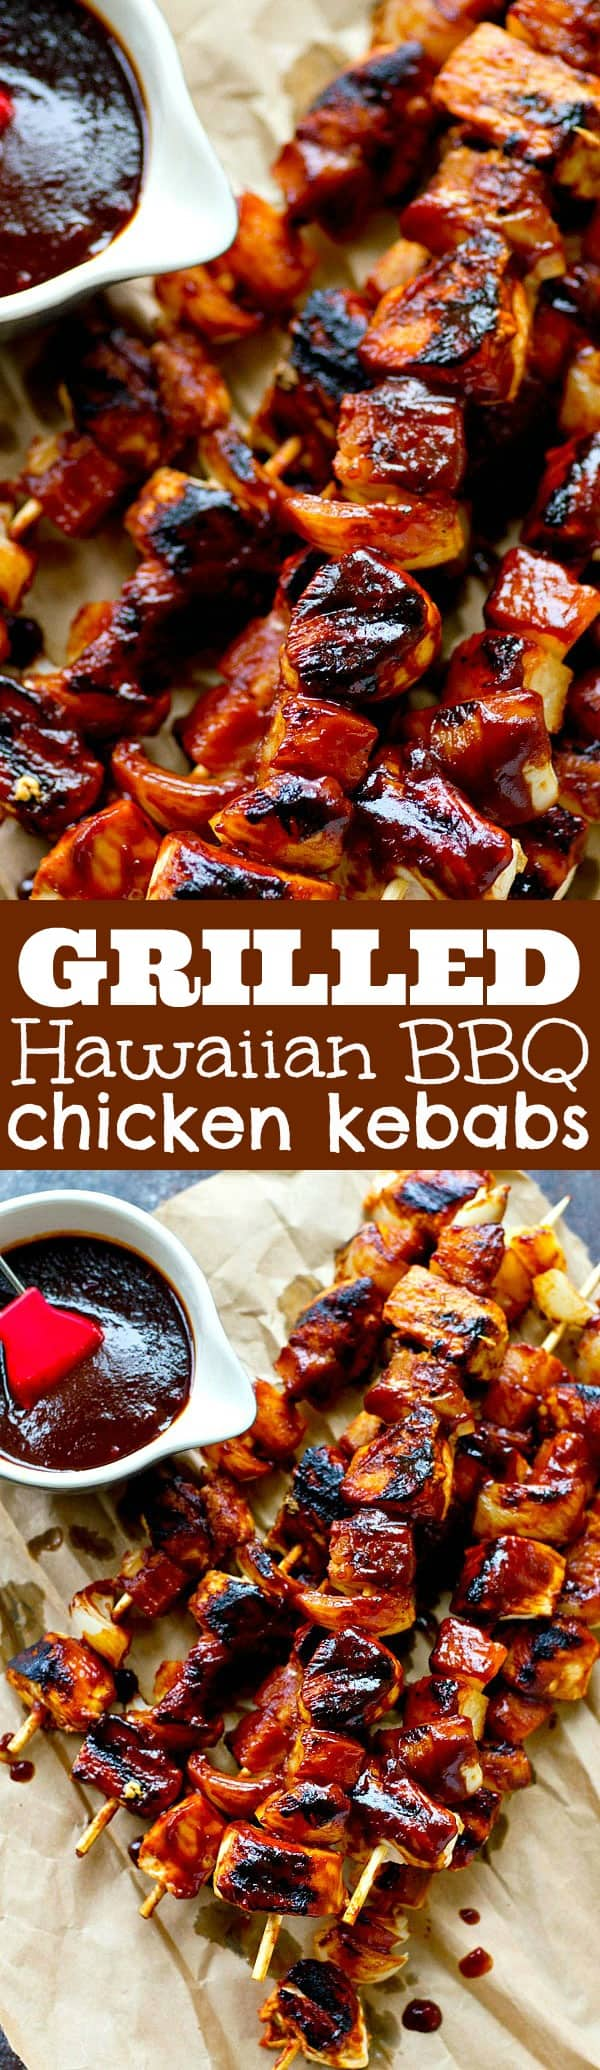 Homemade pineapple BBQ sauce makes these easy 20-minute Hawaiian bbq chicken kebabs SO flavorful you'll want to put them on your grill all summer!